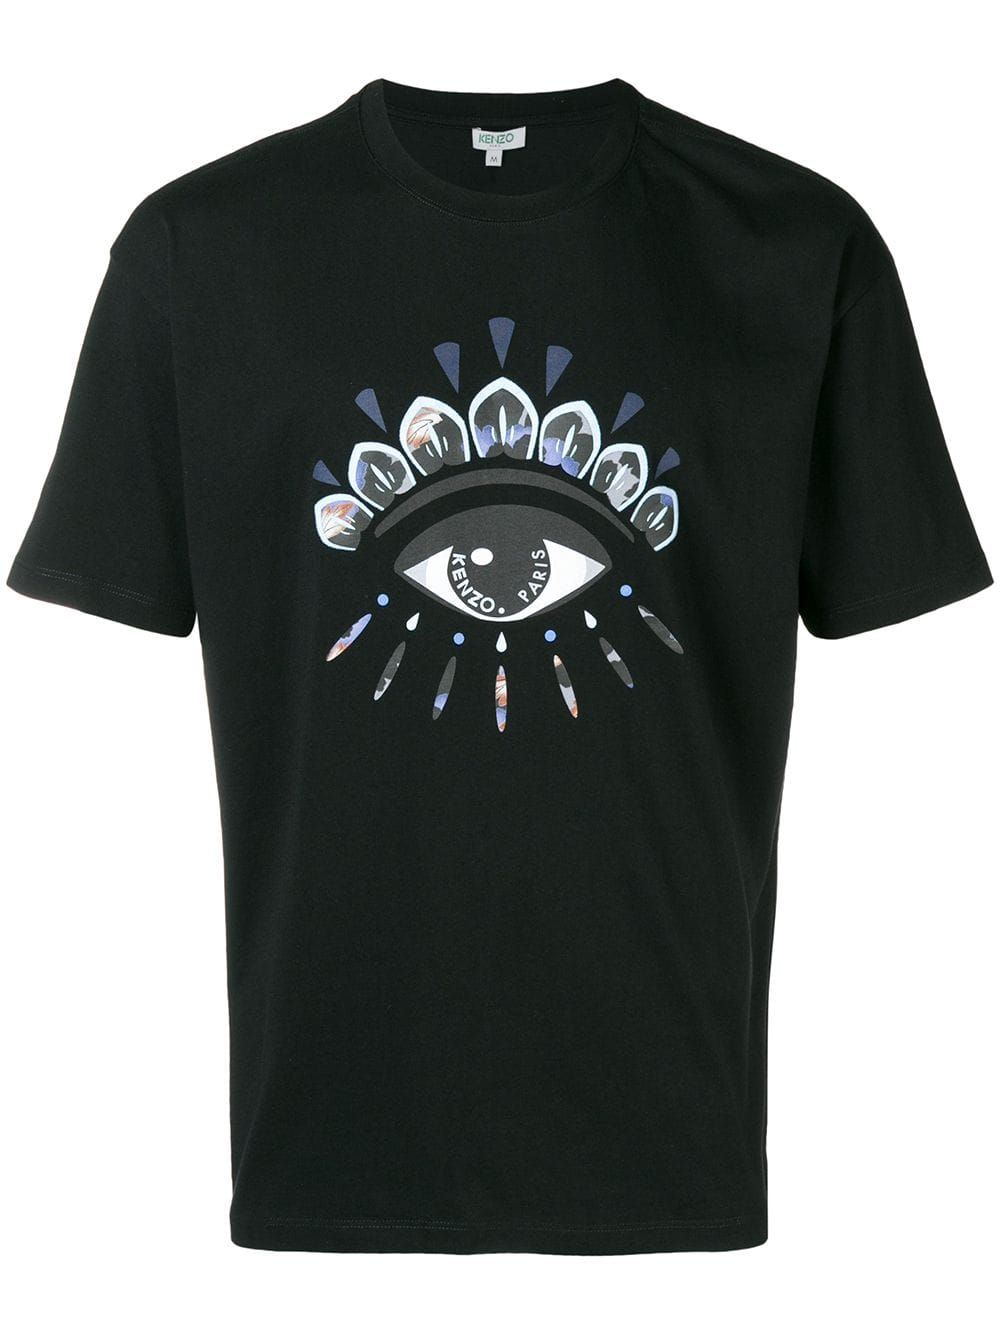 ad149ca249 Kenzo Indonesian Flower Eye T-shirt - Black | Products in 2019 ...